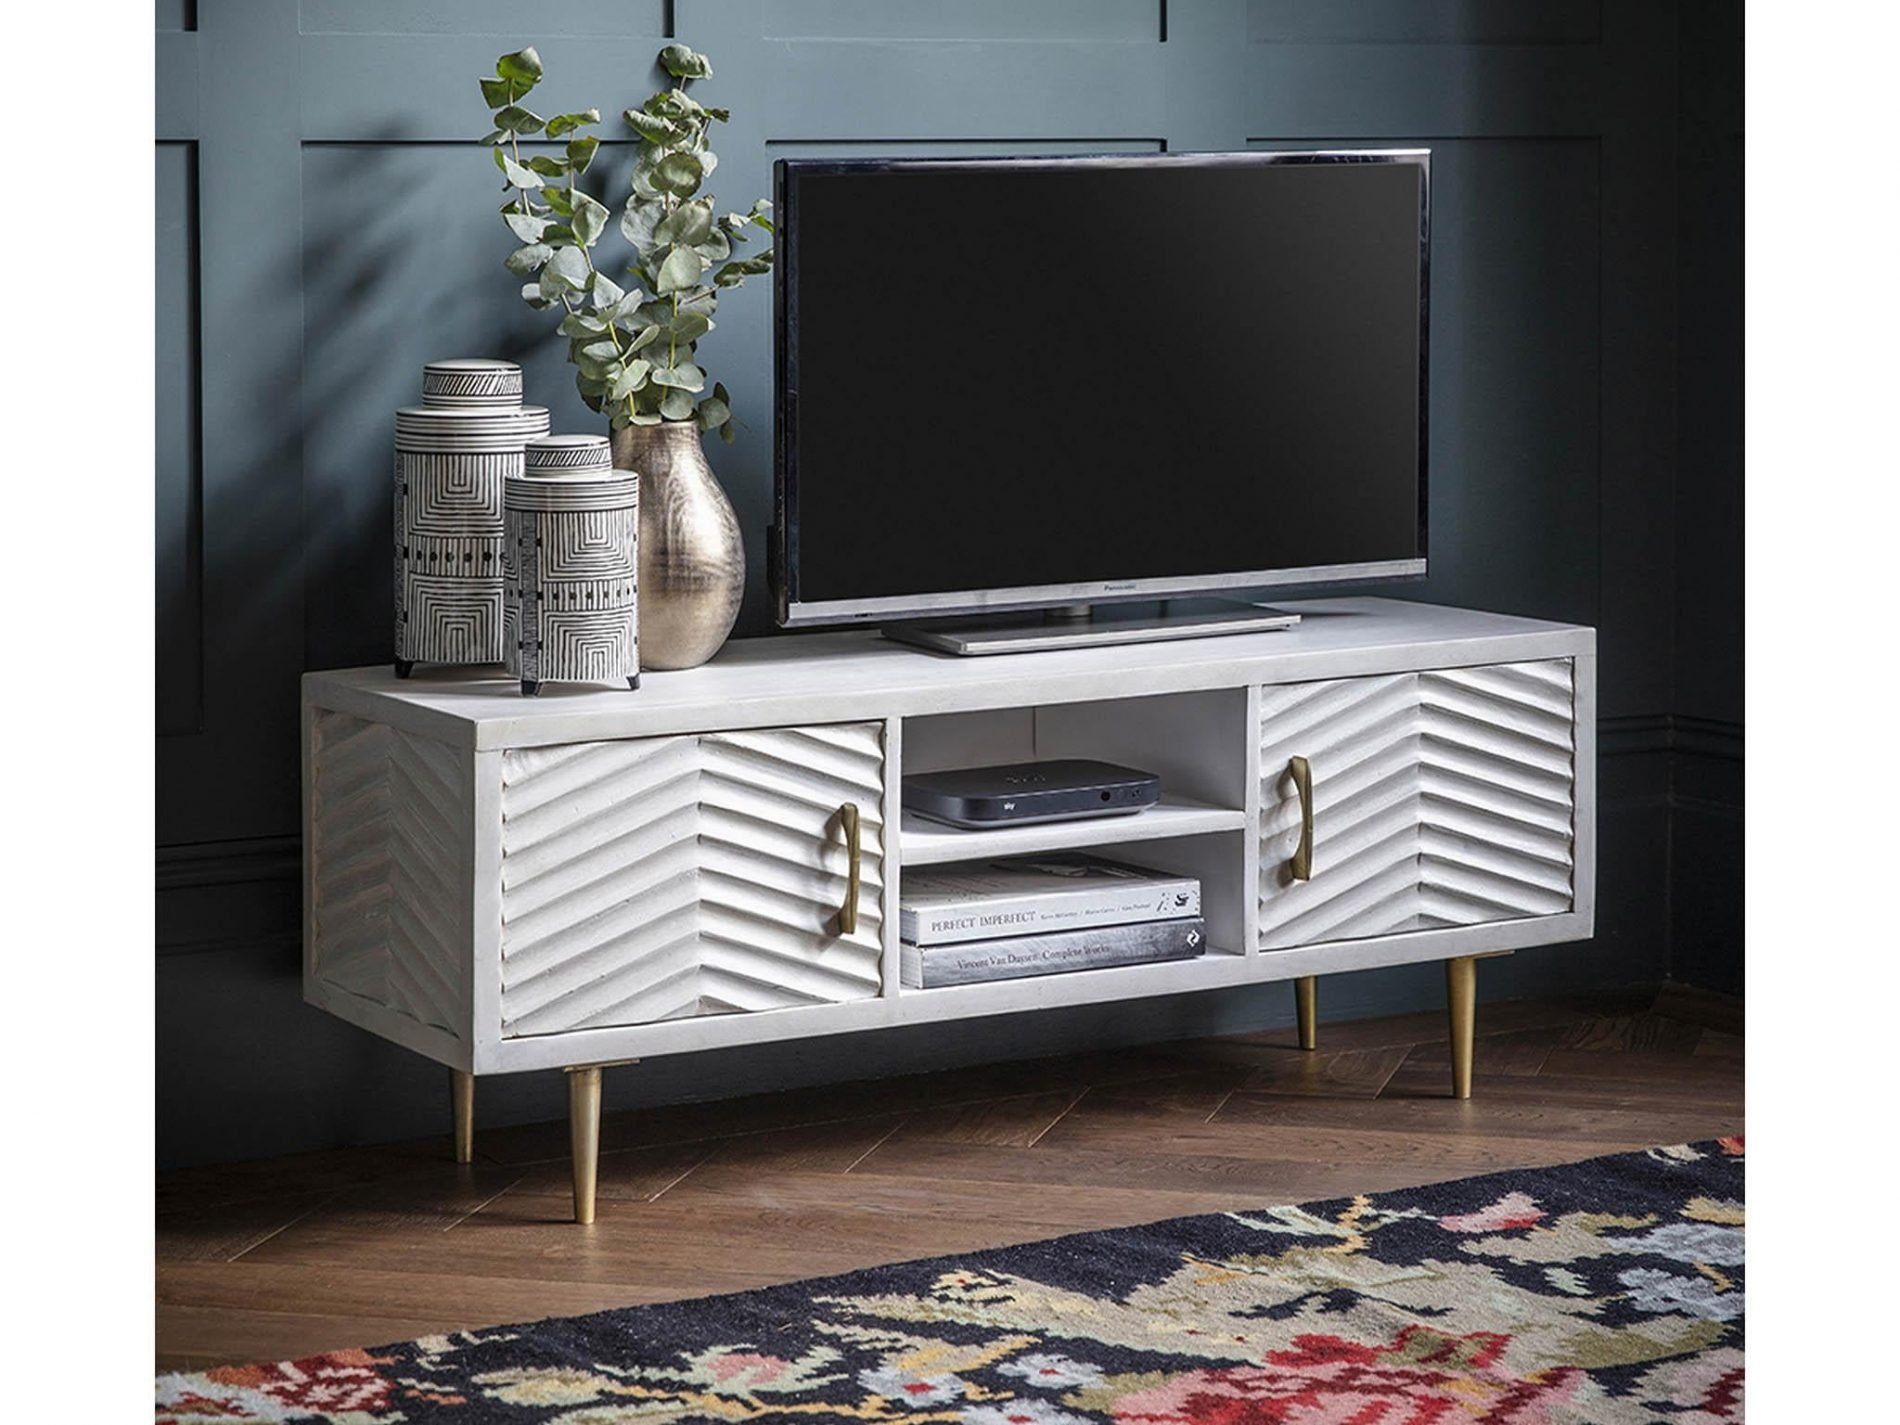 Where To Put Large TV Stands For Flat Screen TV To Create Efficient Interior Layout